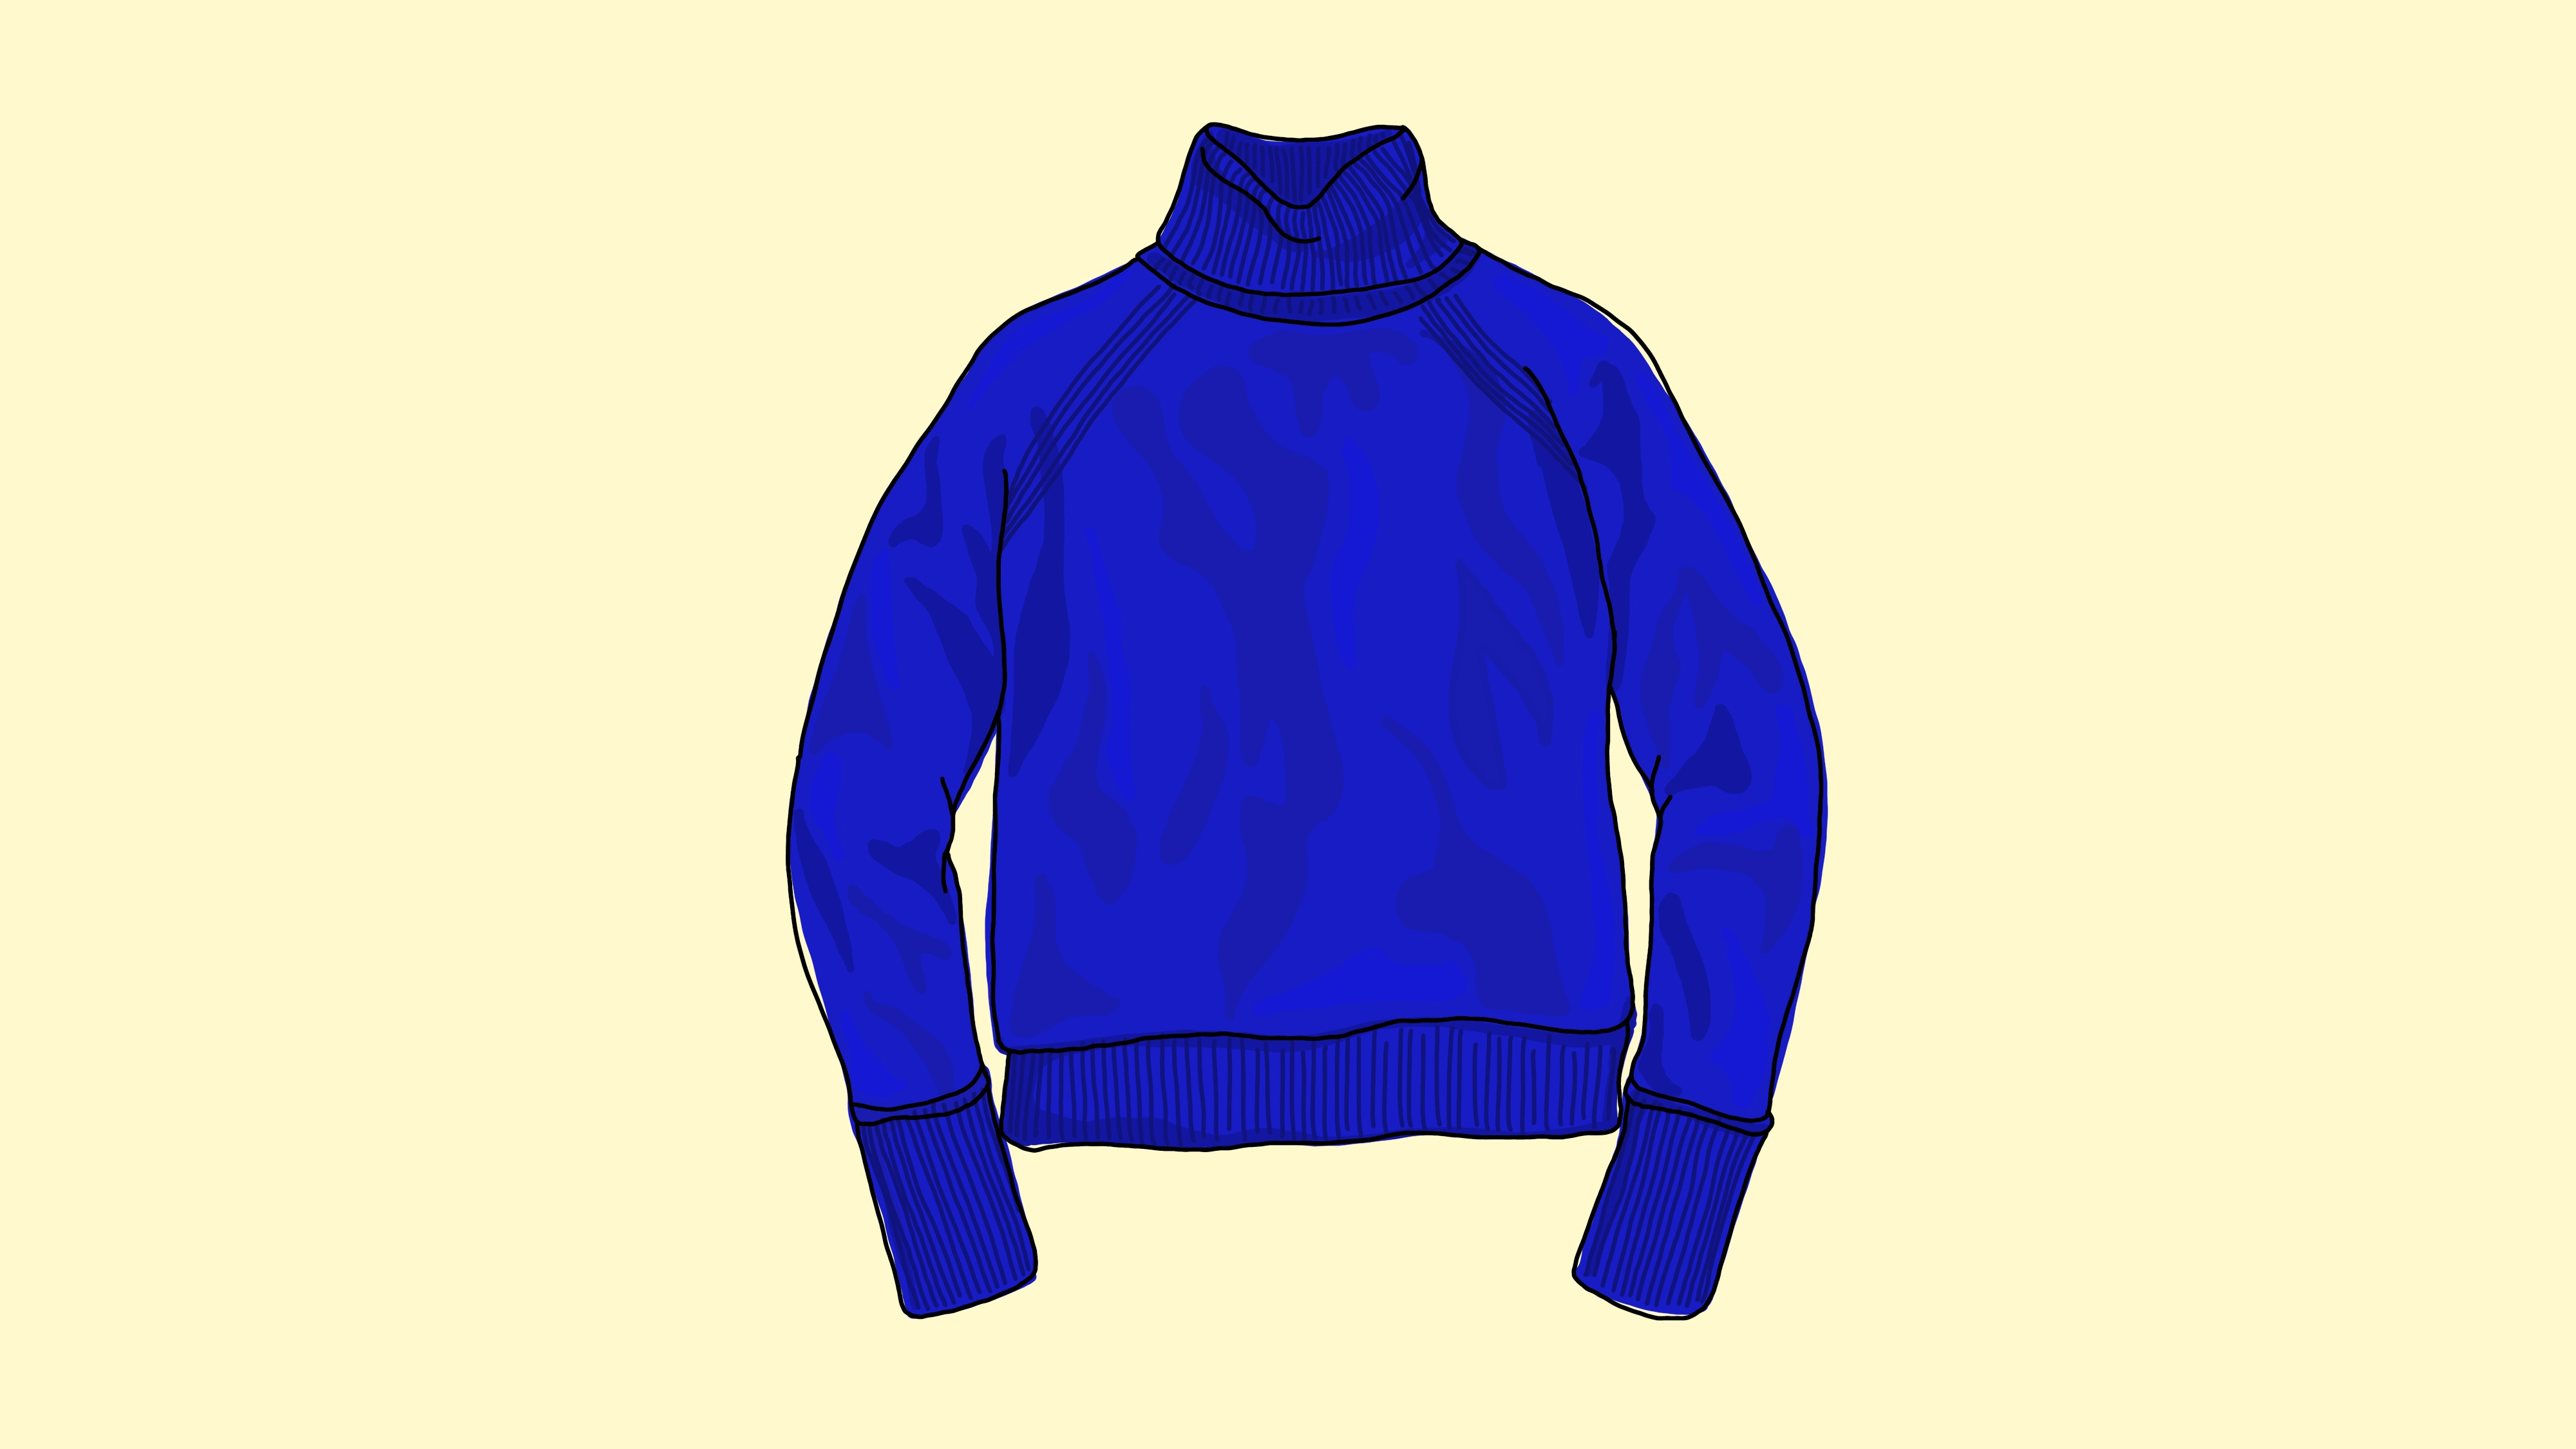 A blue sweater against a cream background.